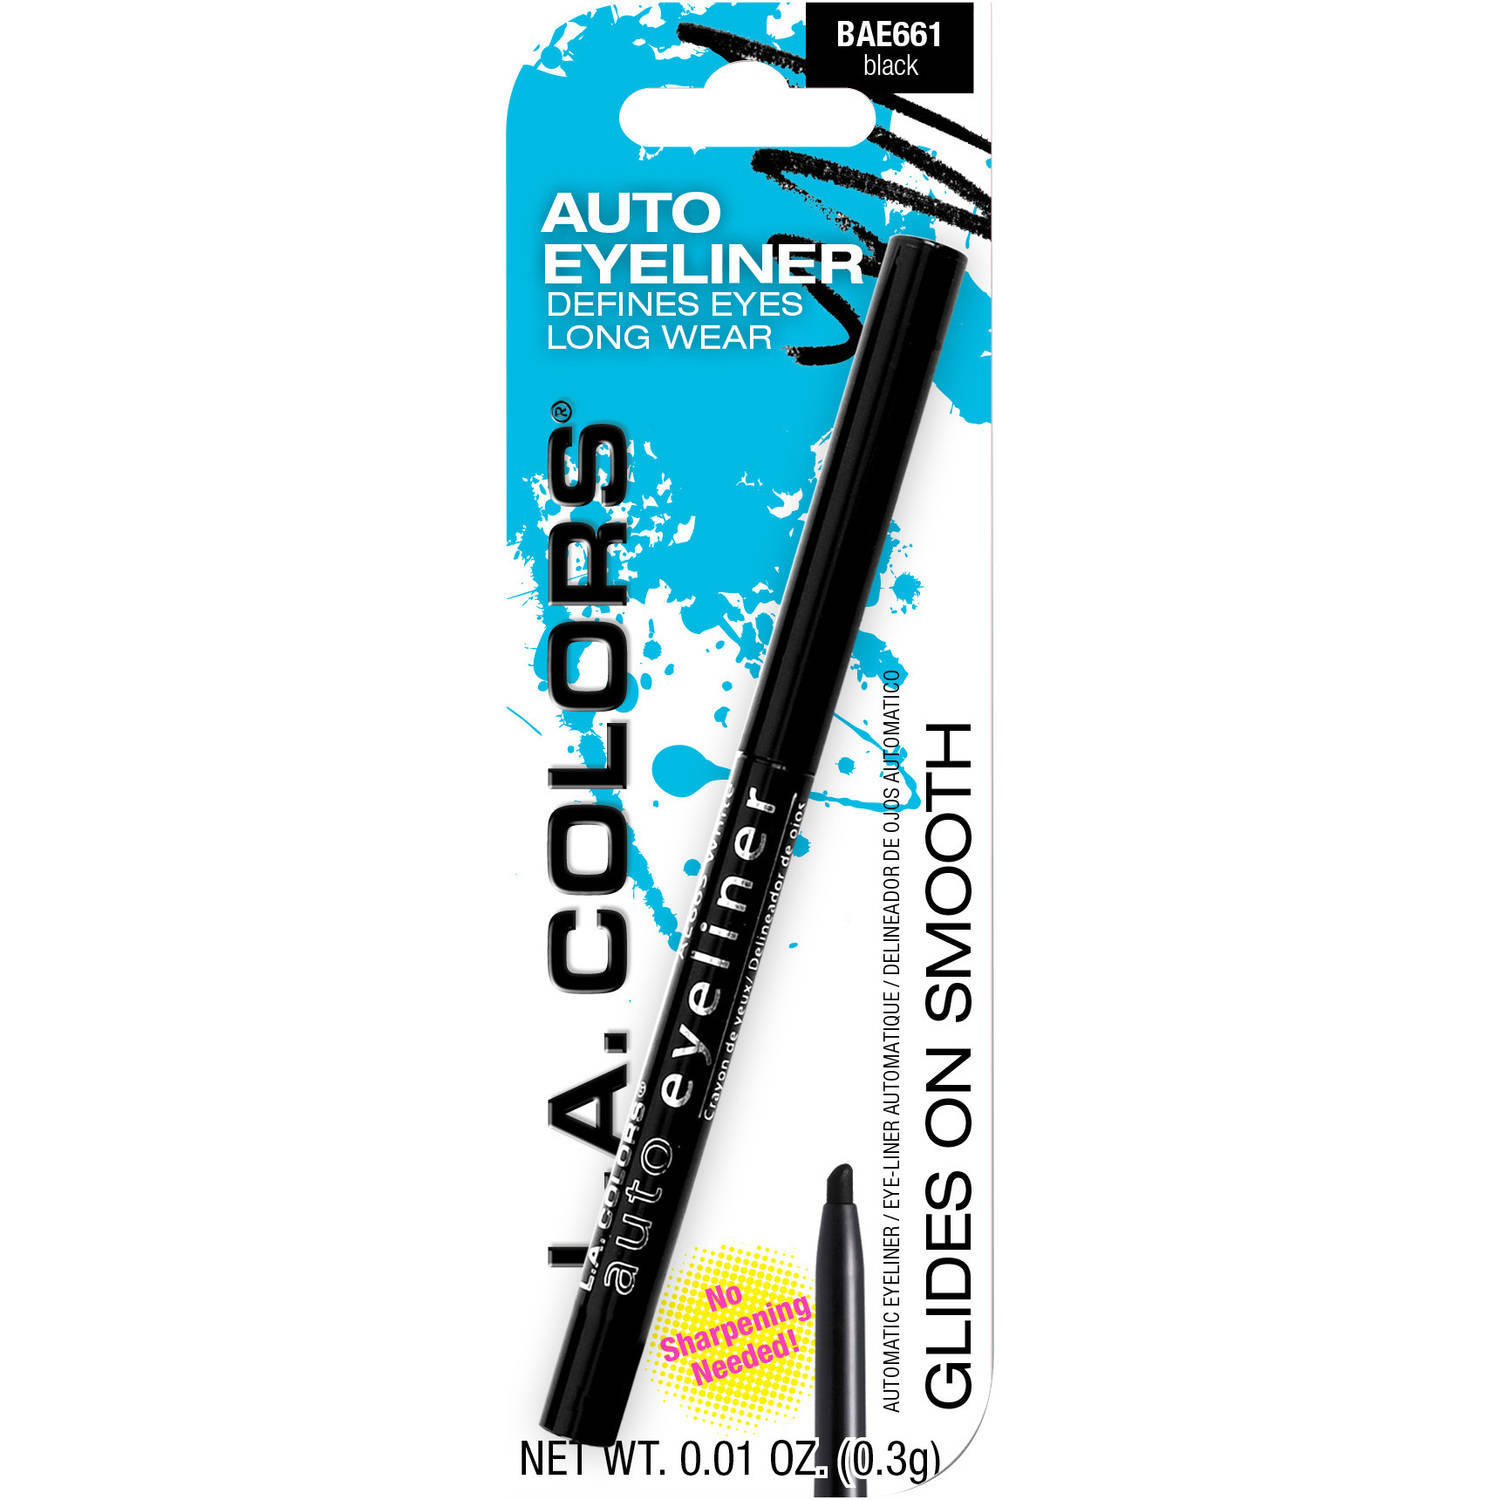 L.A. Colors Auto Eyeliner Pencil, Black, 0.01 oz